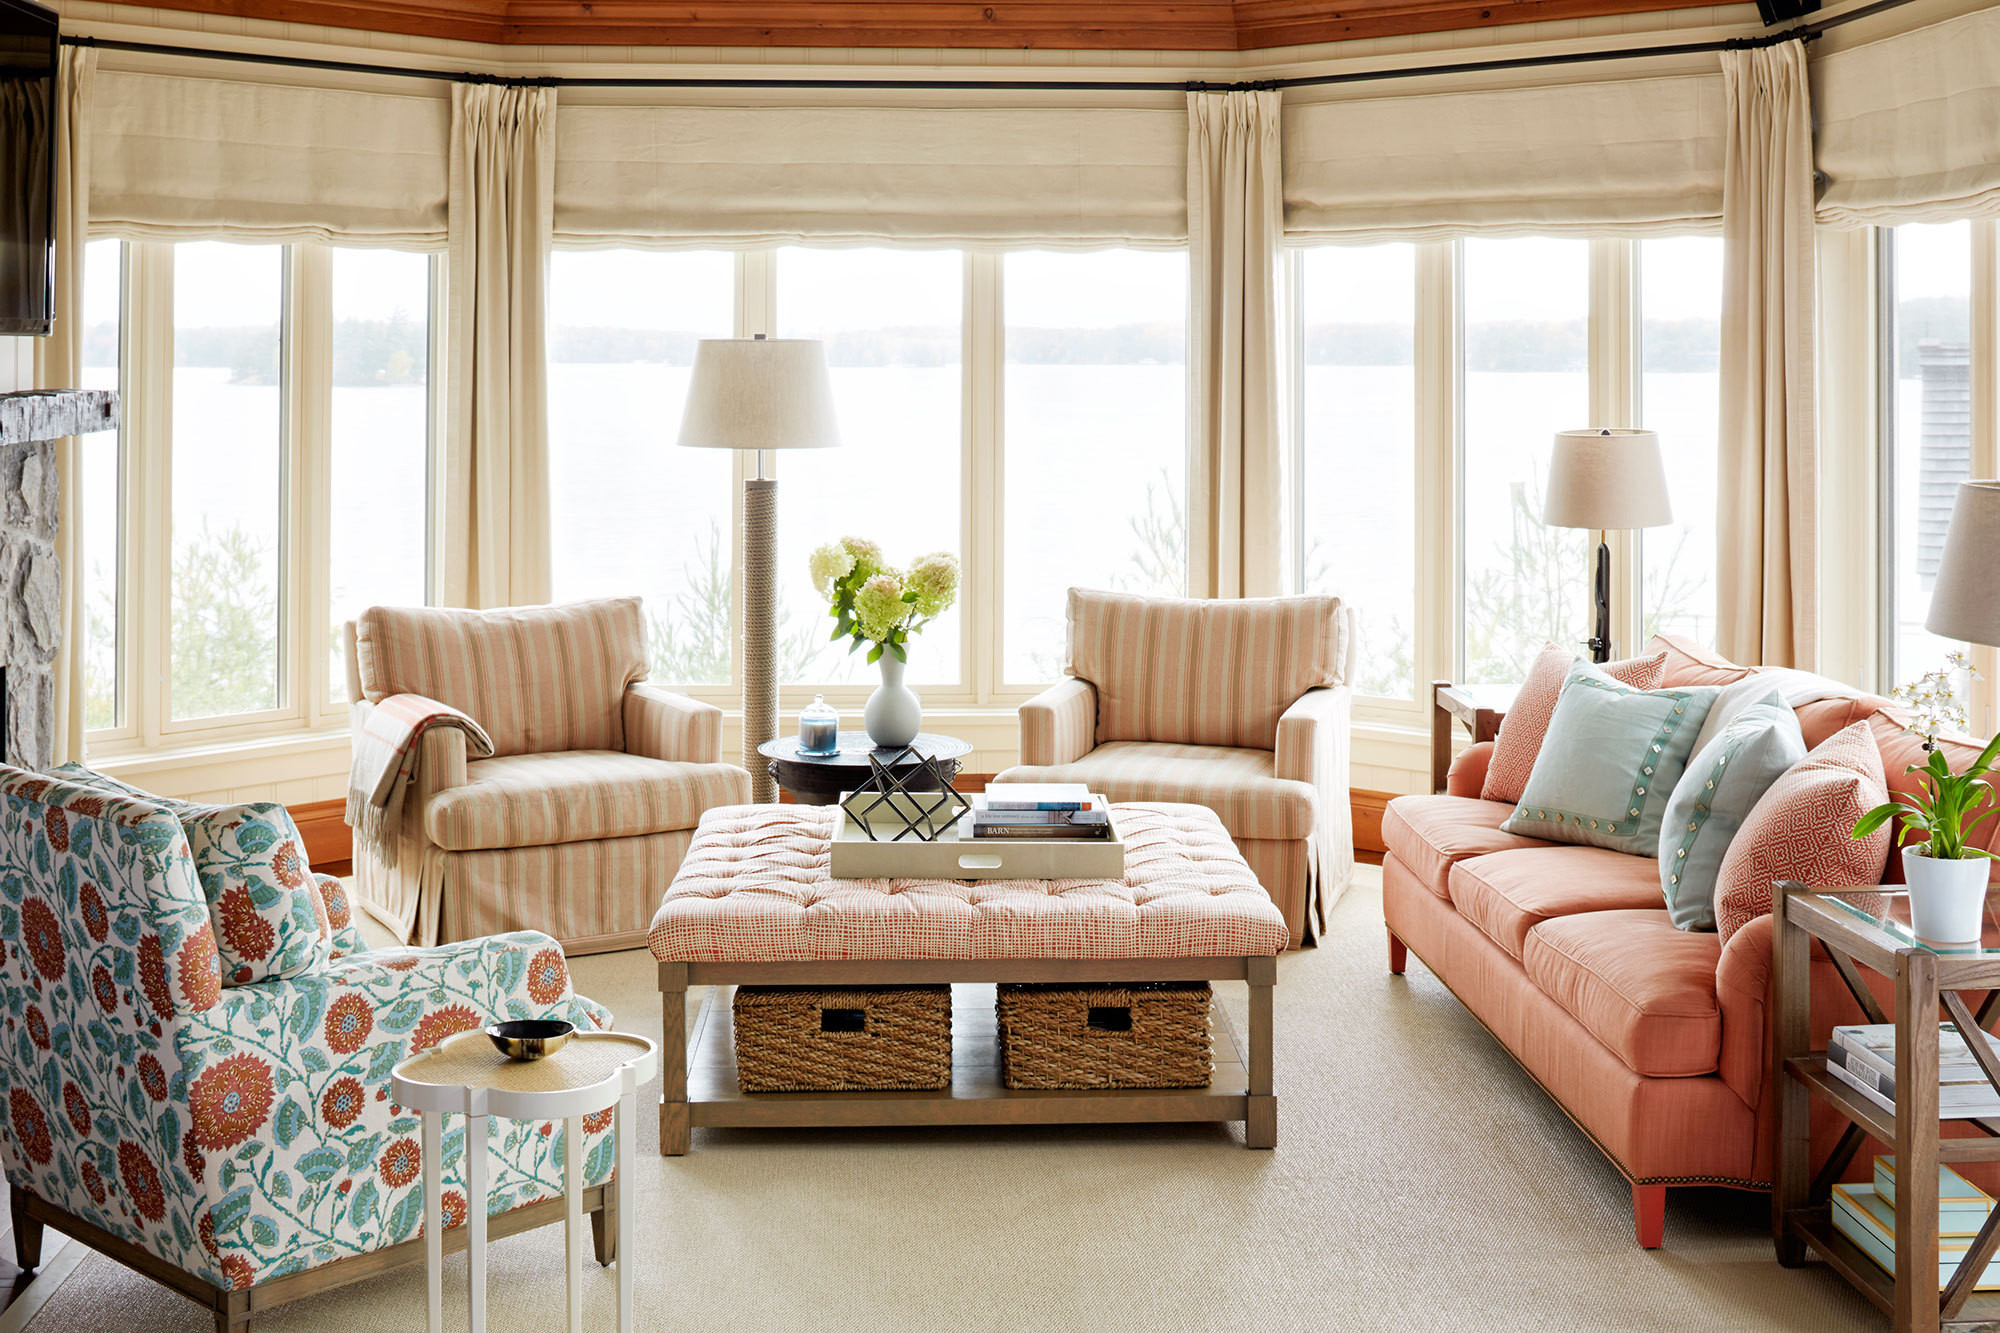 In The Family Room Overlooking Lake Joseph Upholstered Furnishings And Understated Nbsp Hues Create